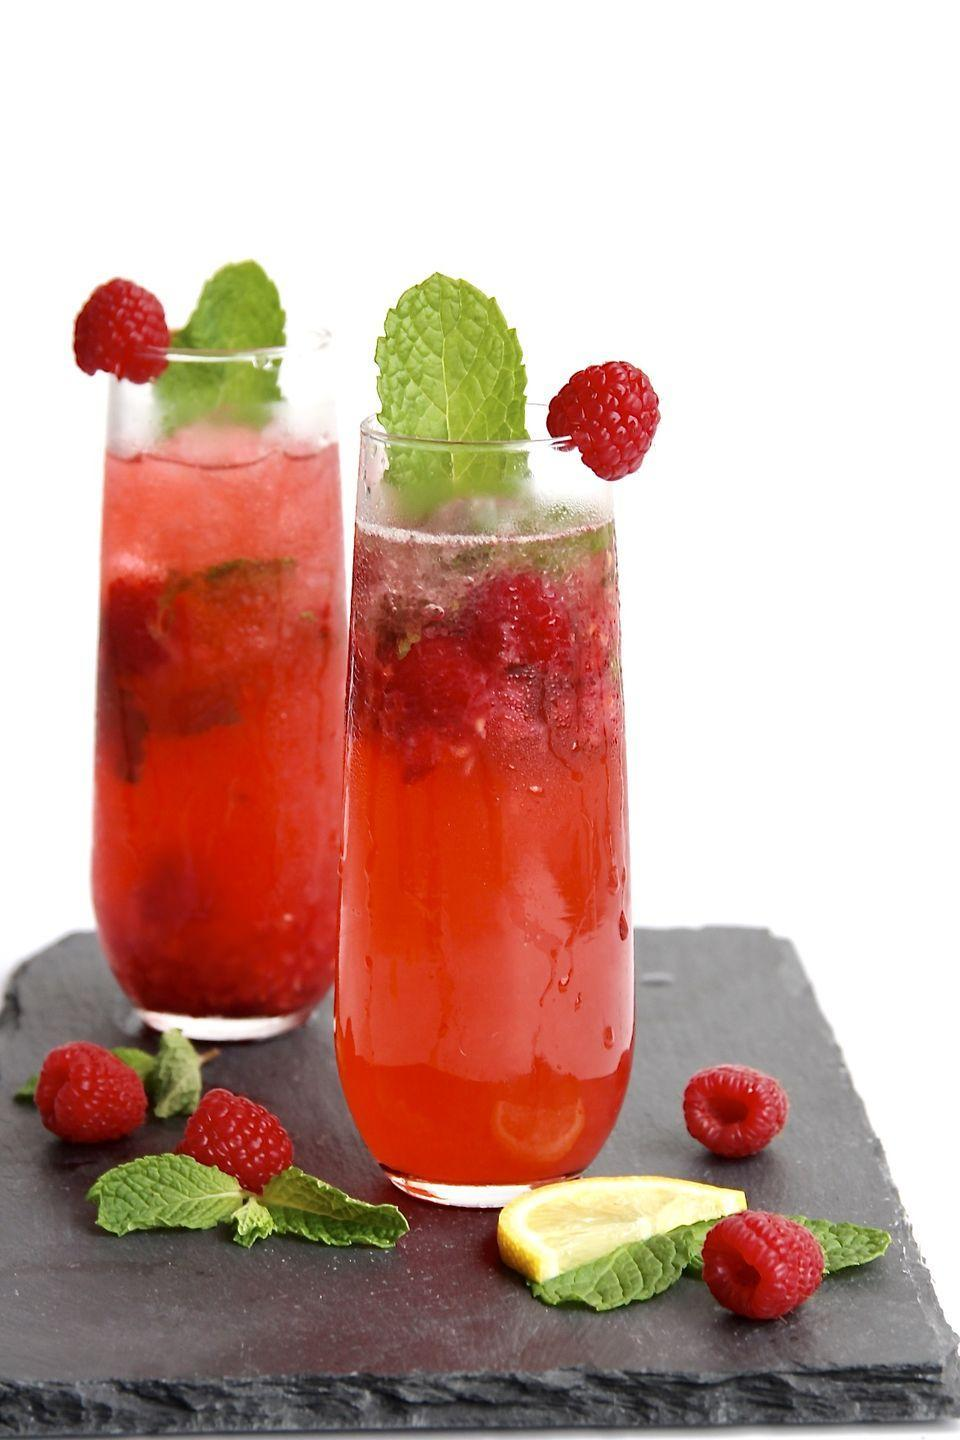 """<p>Beat the summer heat with muddled mint, raspberries, lemon, simple syrup, rum, and a splash of prosecco. </p><p>Get the recipe at <a href=""""https://thebakermama.com/recipes/sparkling-raspberry-mojitos/"""" rel=""""nofollow noopener"""" target=""""_blank"""" data-ylk=""""slk:The Baker Mama"""" class=""""link rapid-noclick-resp"""">The Baker Mama</a>.</p>"""